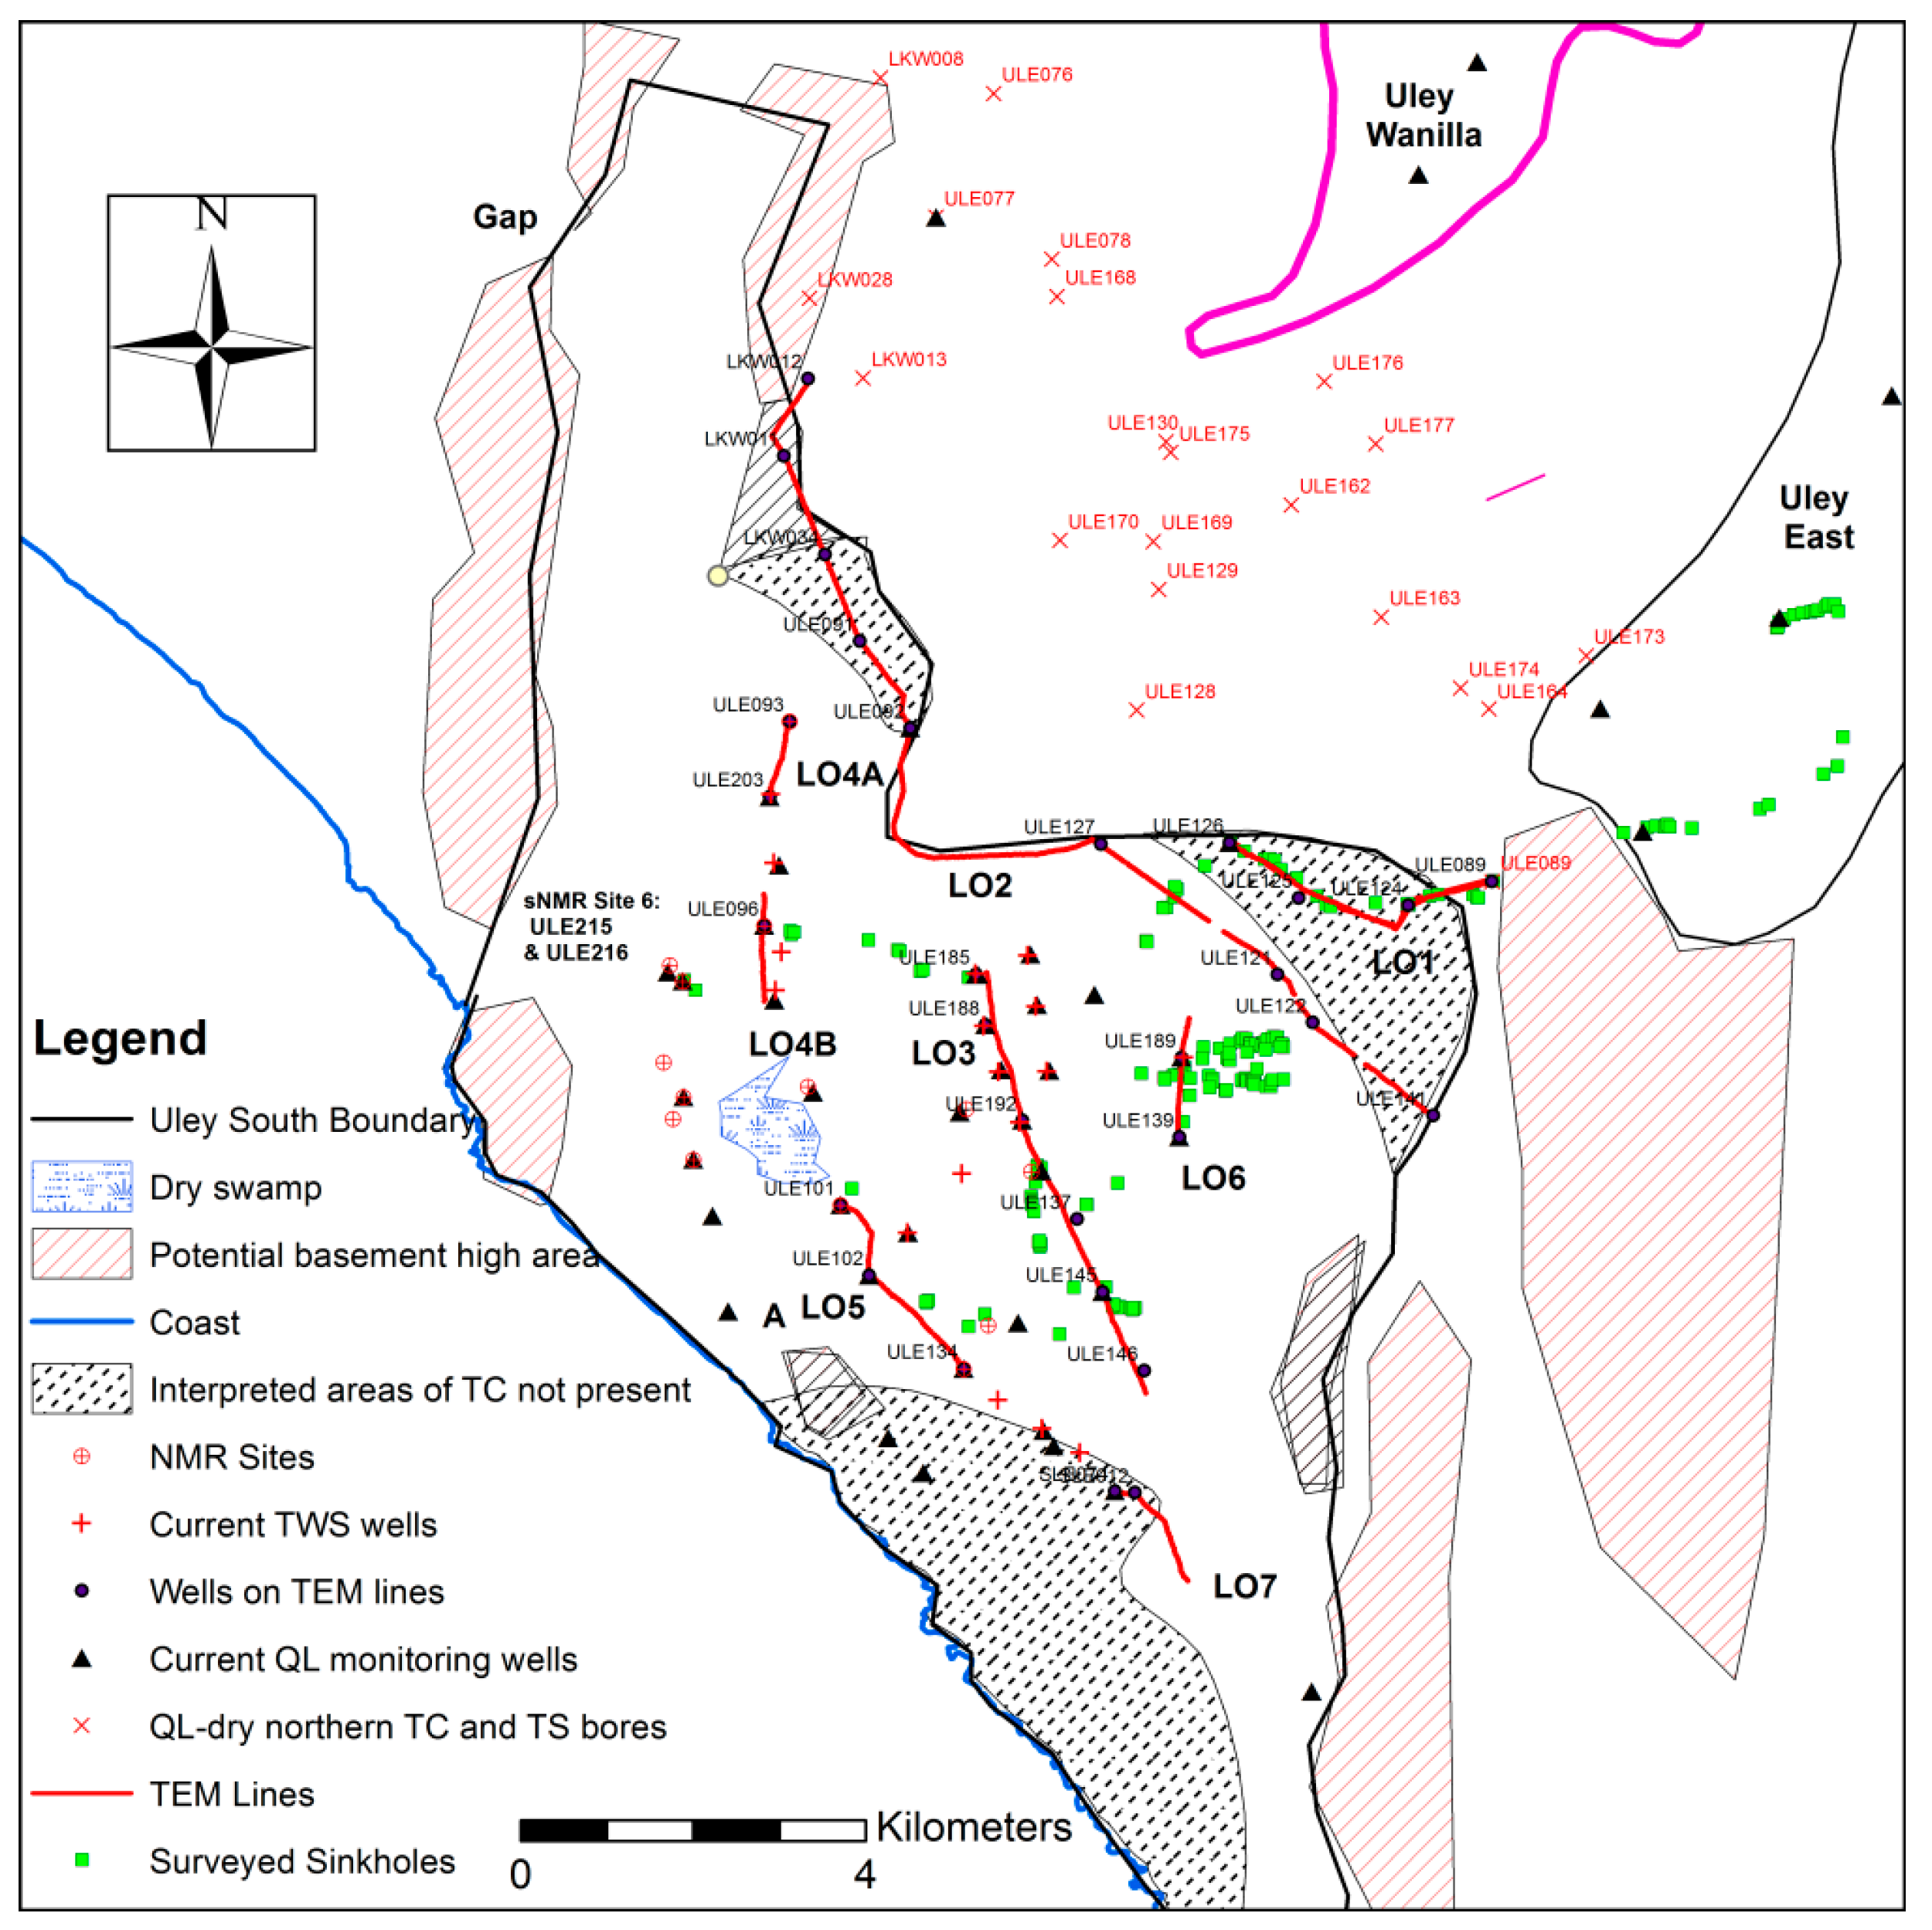 Geosciences Free Full Text Geophysical Input To Improve The Wiring Diagram 2000 National Tropical 08 00226 G005